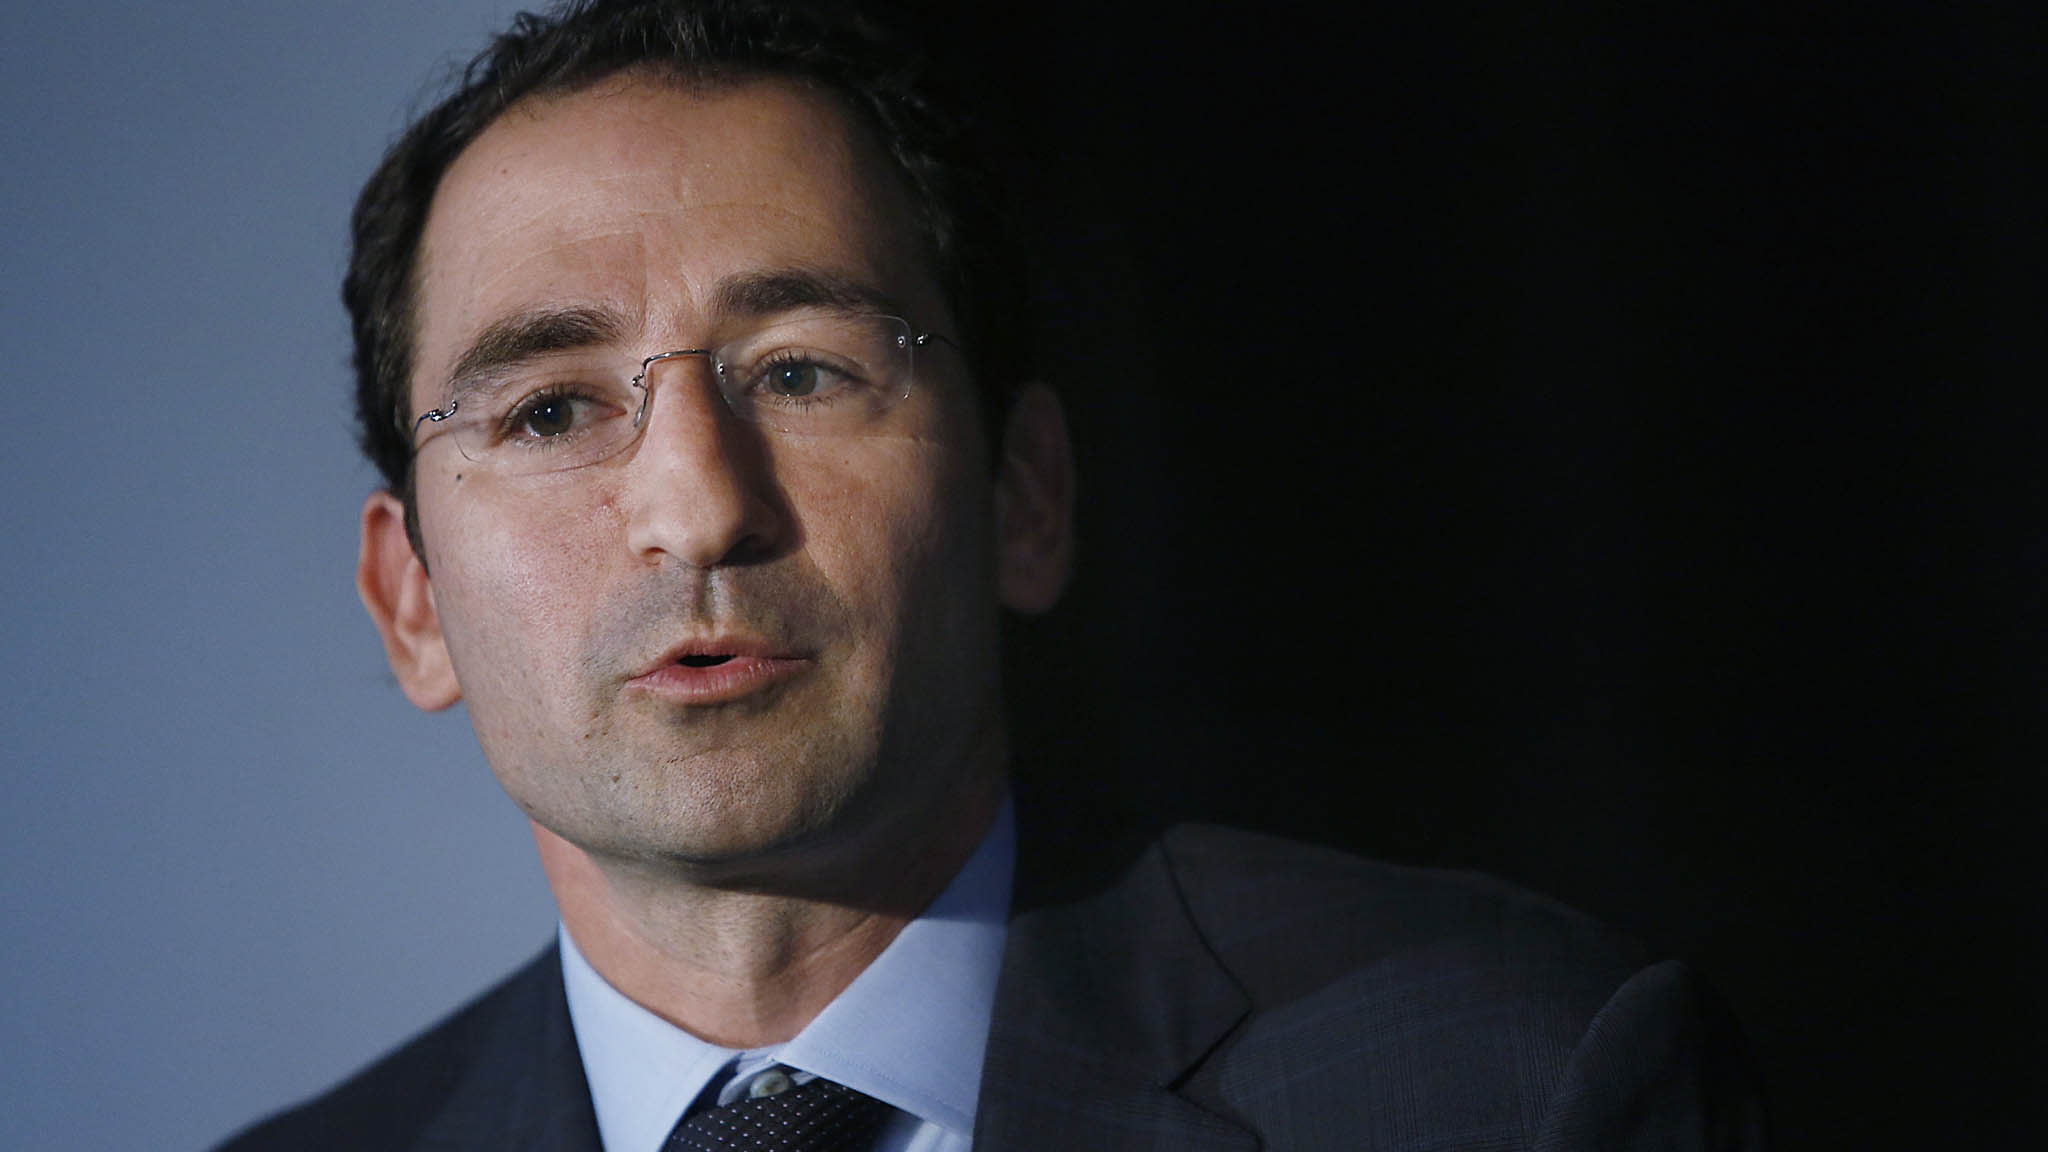 Jon Gray: Blackstone's real estate chief turns heir apparent